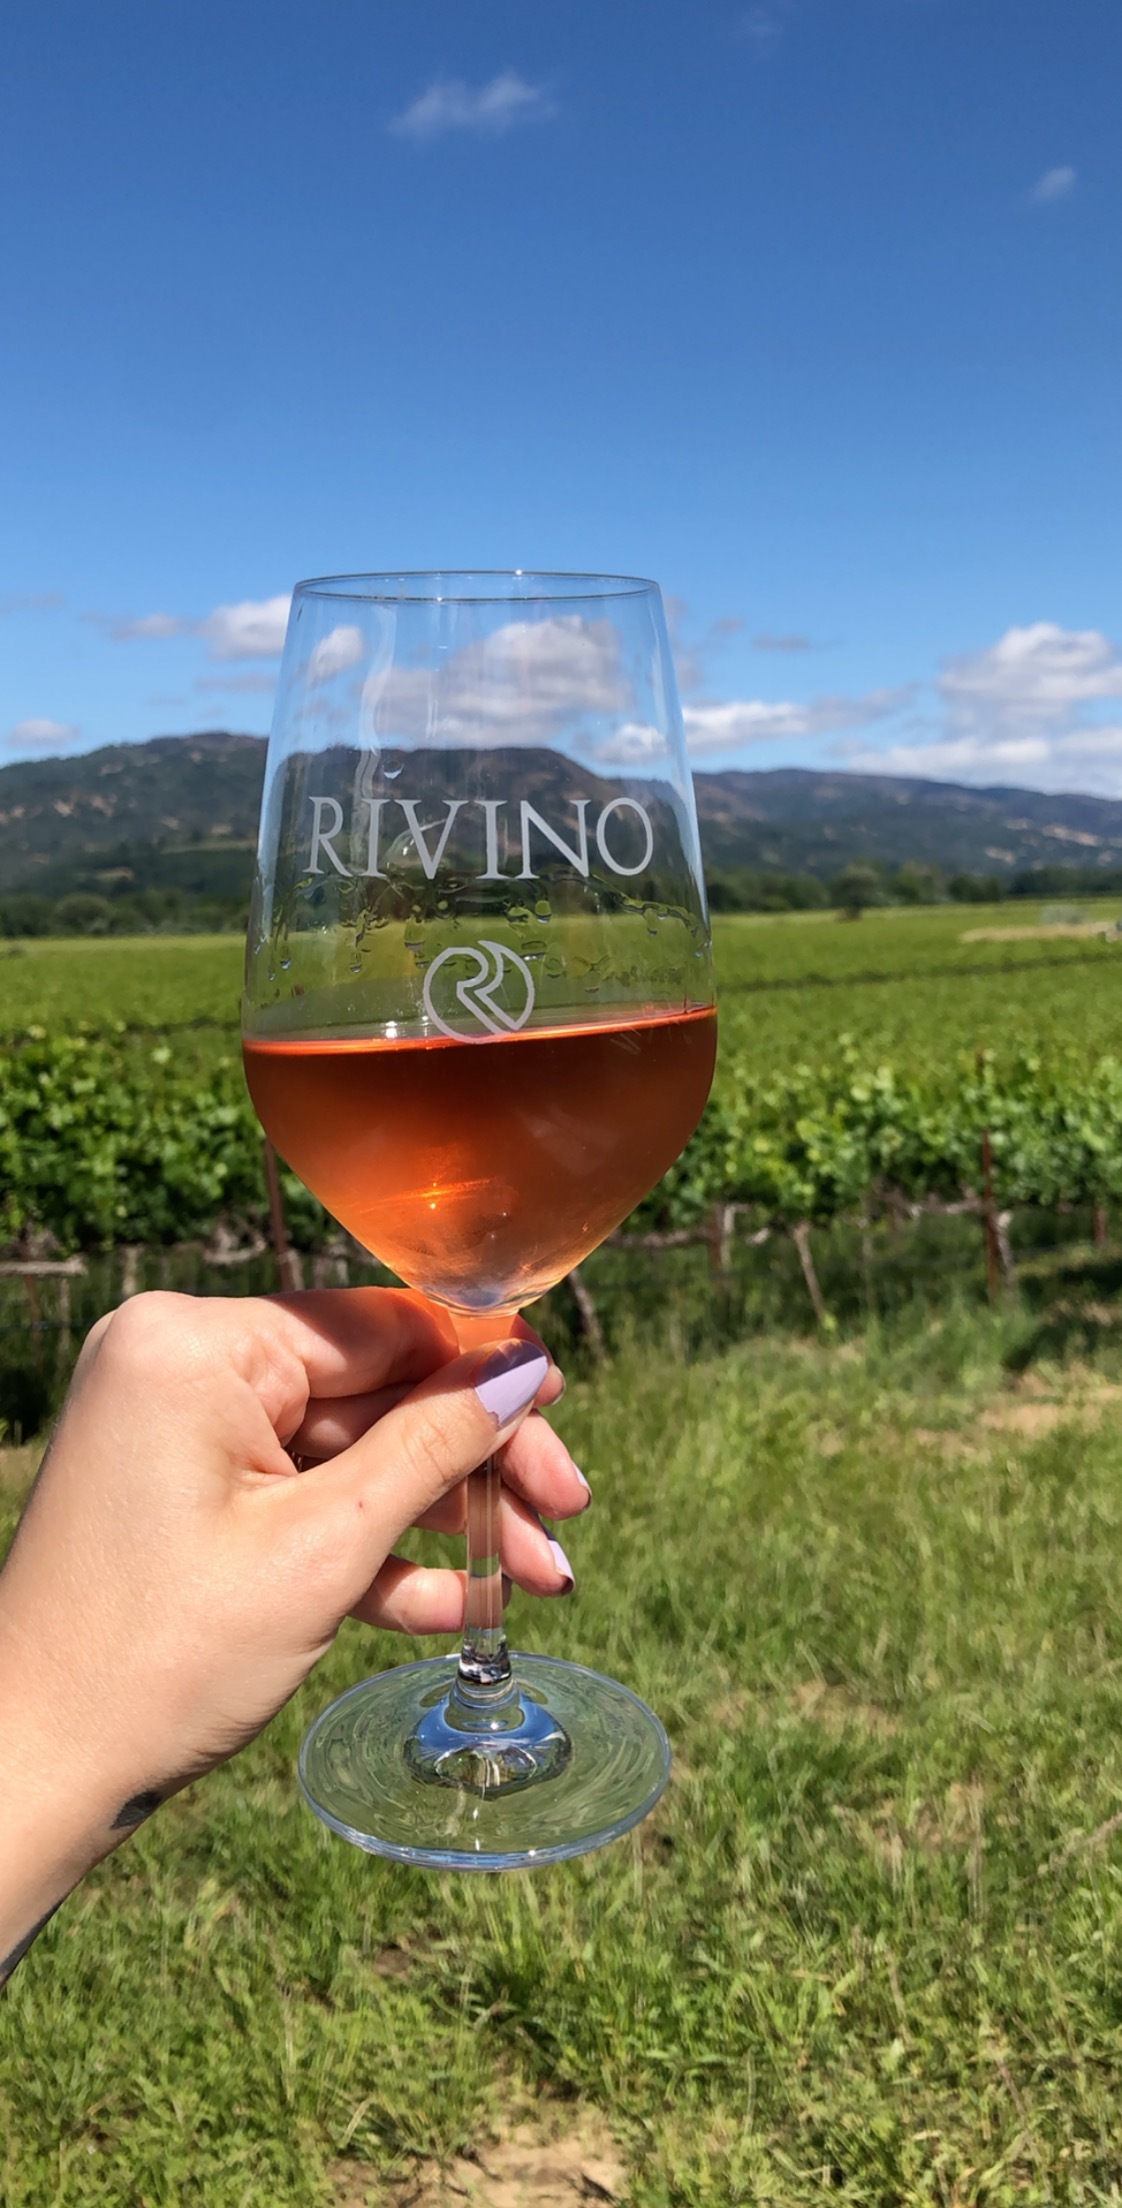 Rivino Winery - a top dog friendly winery in California